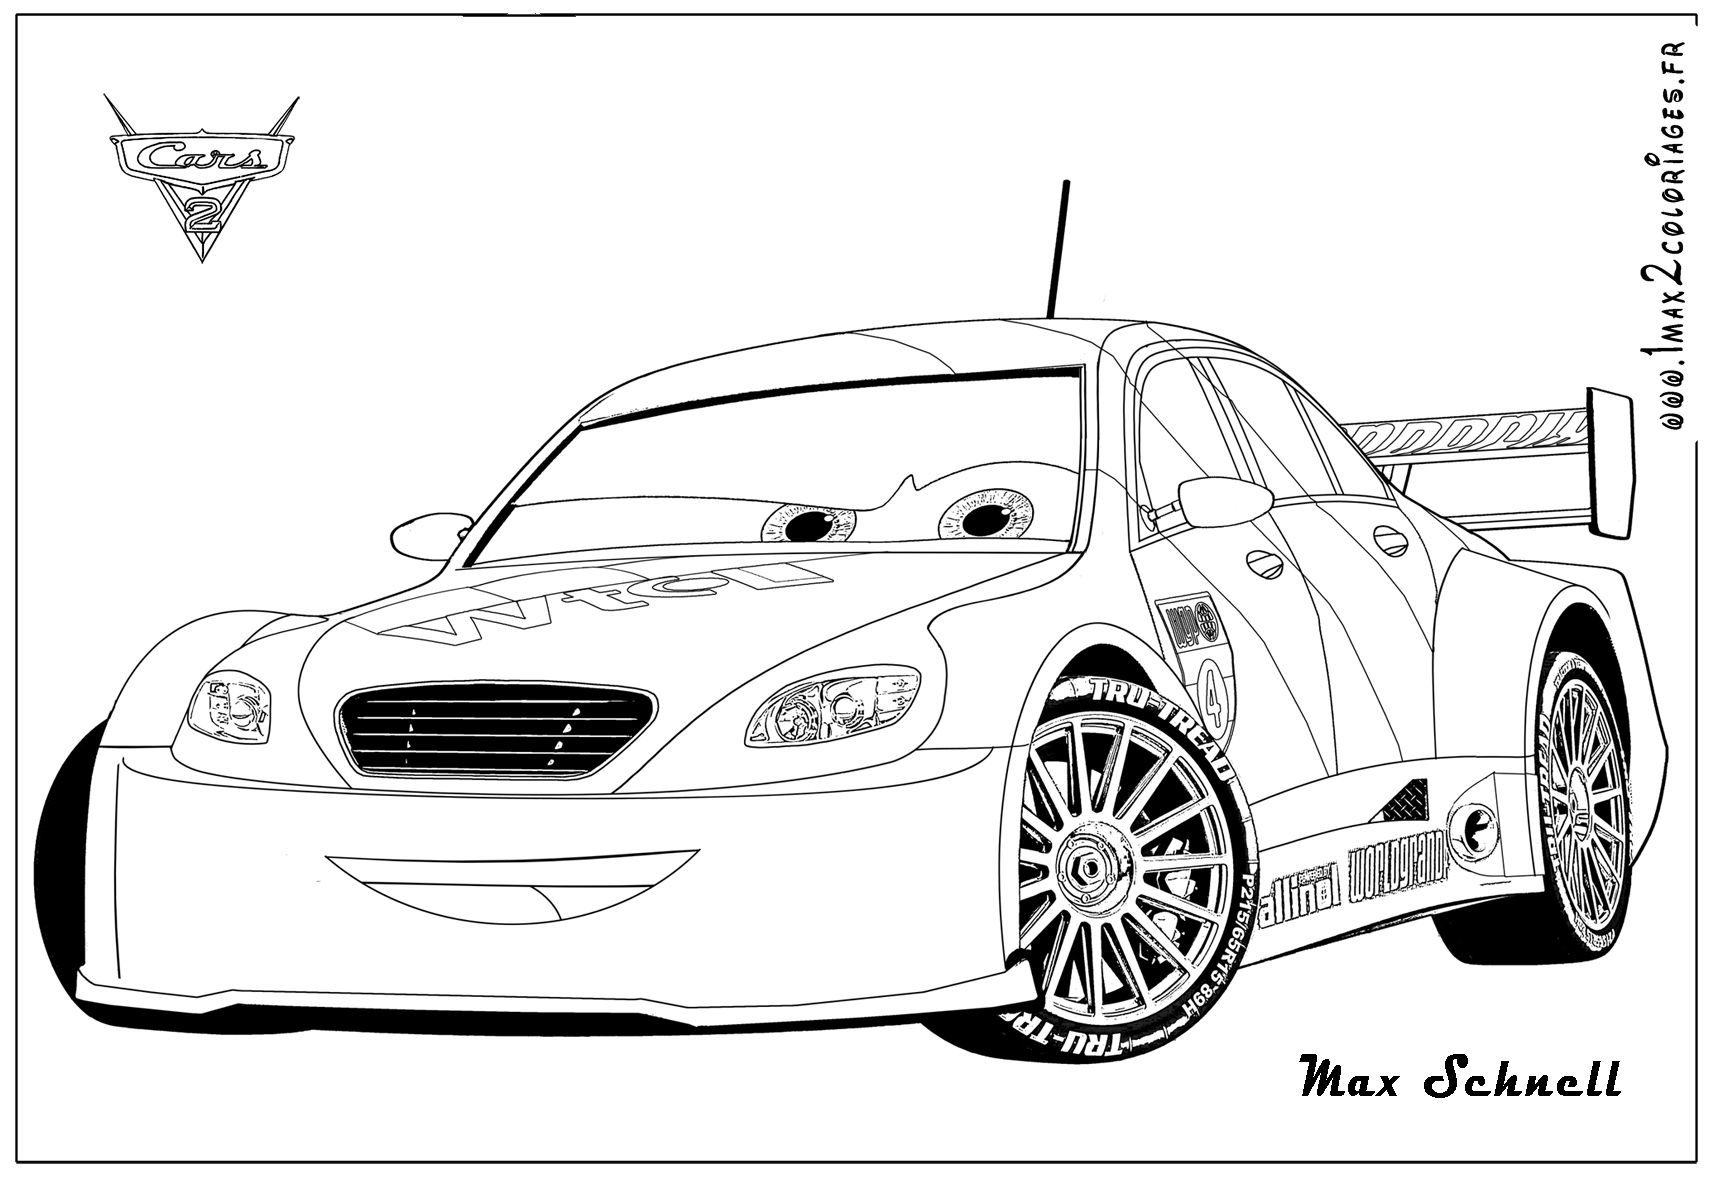 Kerwhizz coloring pages ~ cars 2 max schnell colouring pages